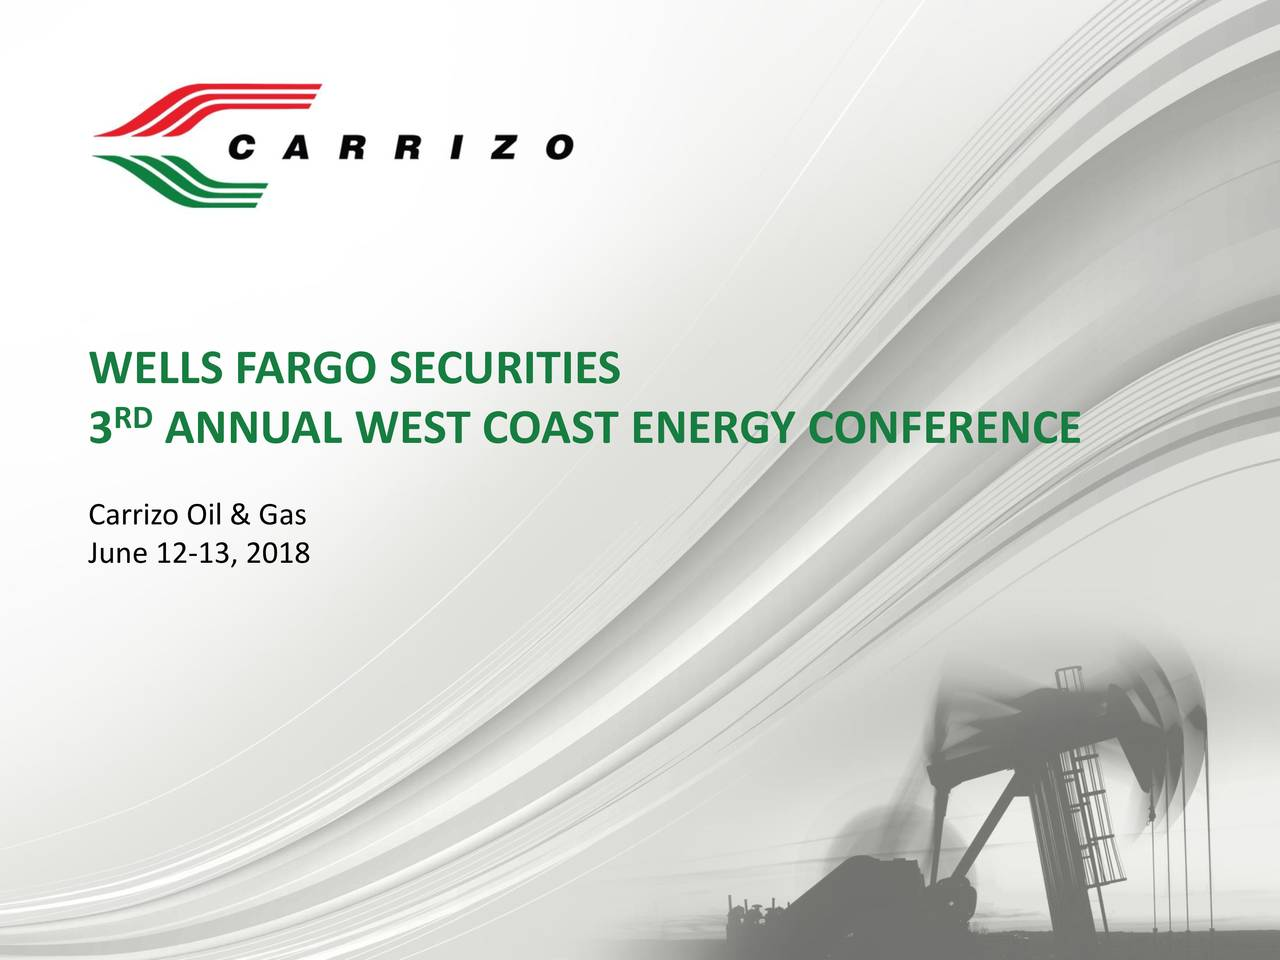 3RD ANNUAL WEST COAST ENERGY CONFERENCE Carrizo Oil & Gas June 12-13, 2018